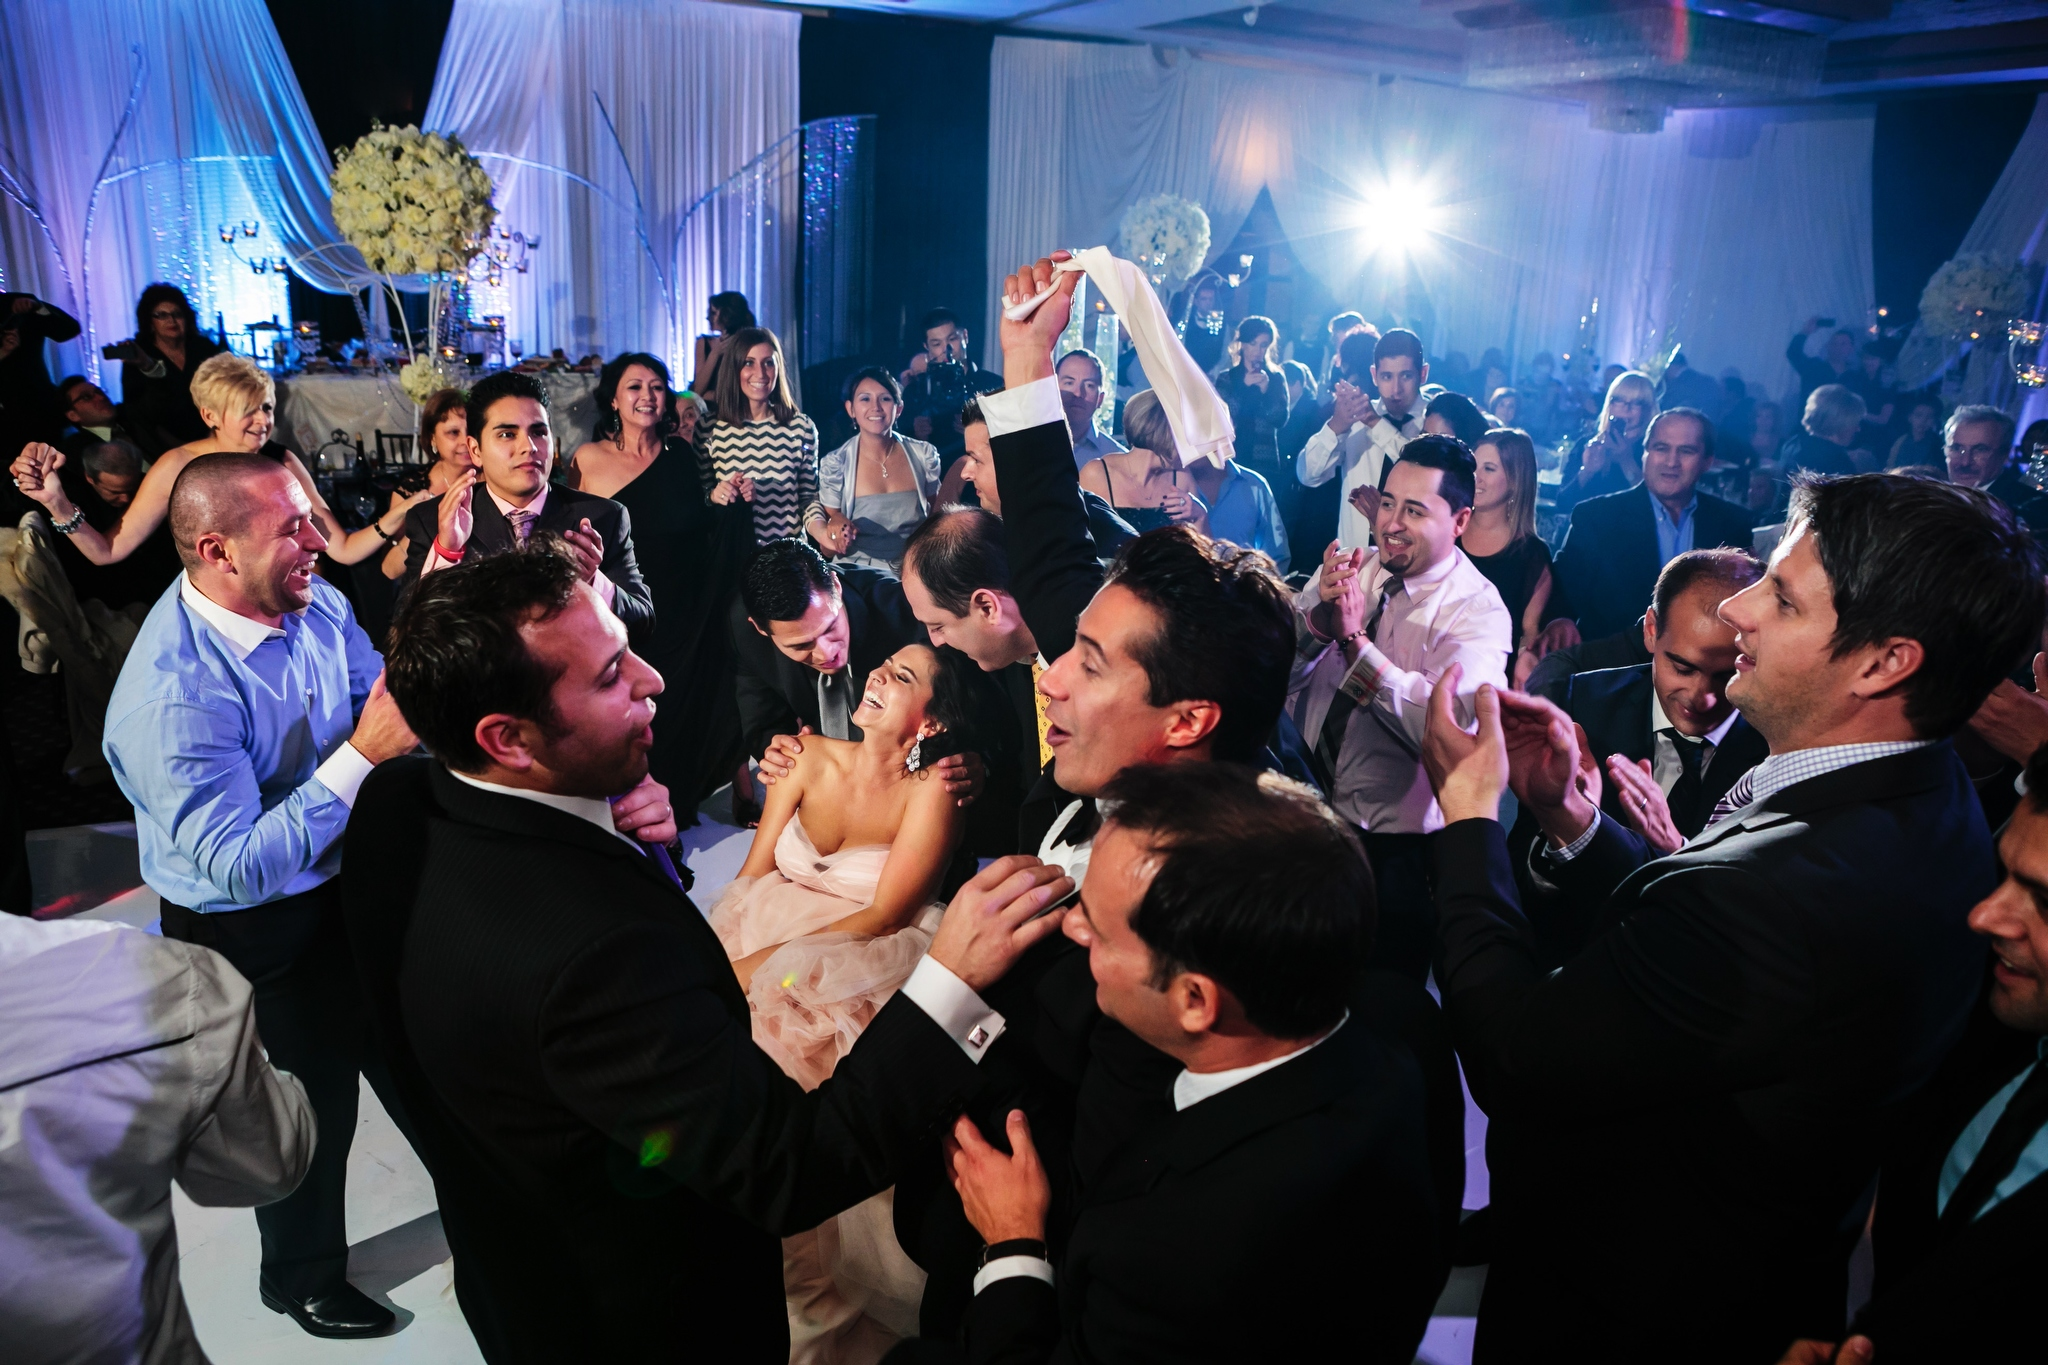 Epic Wedding Reception Photography